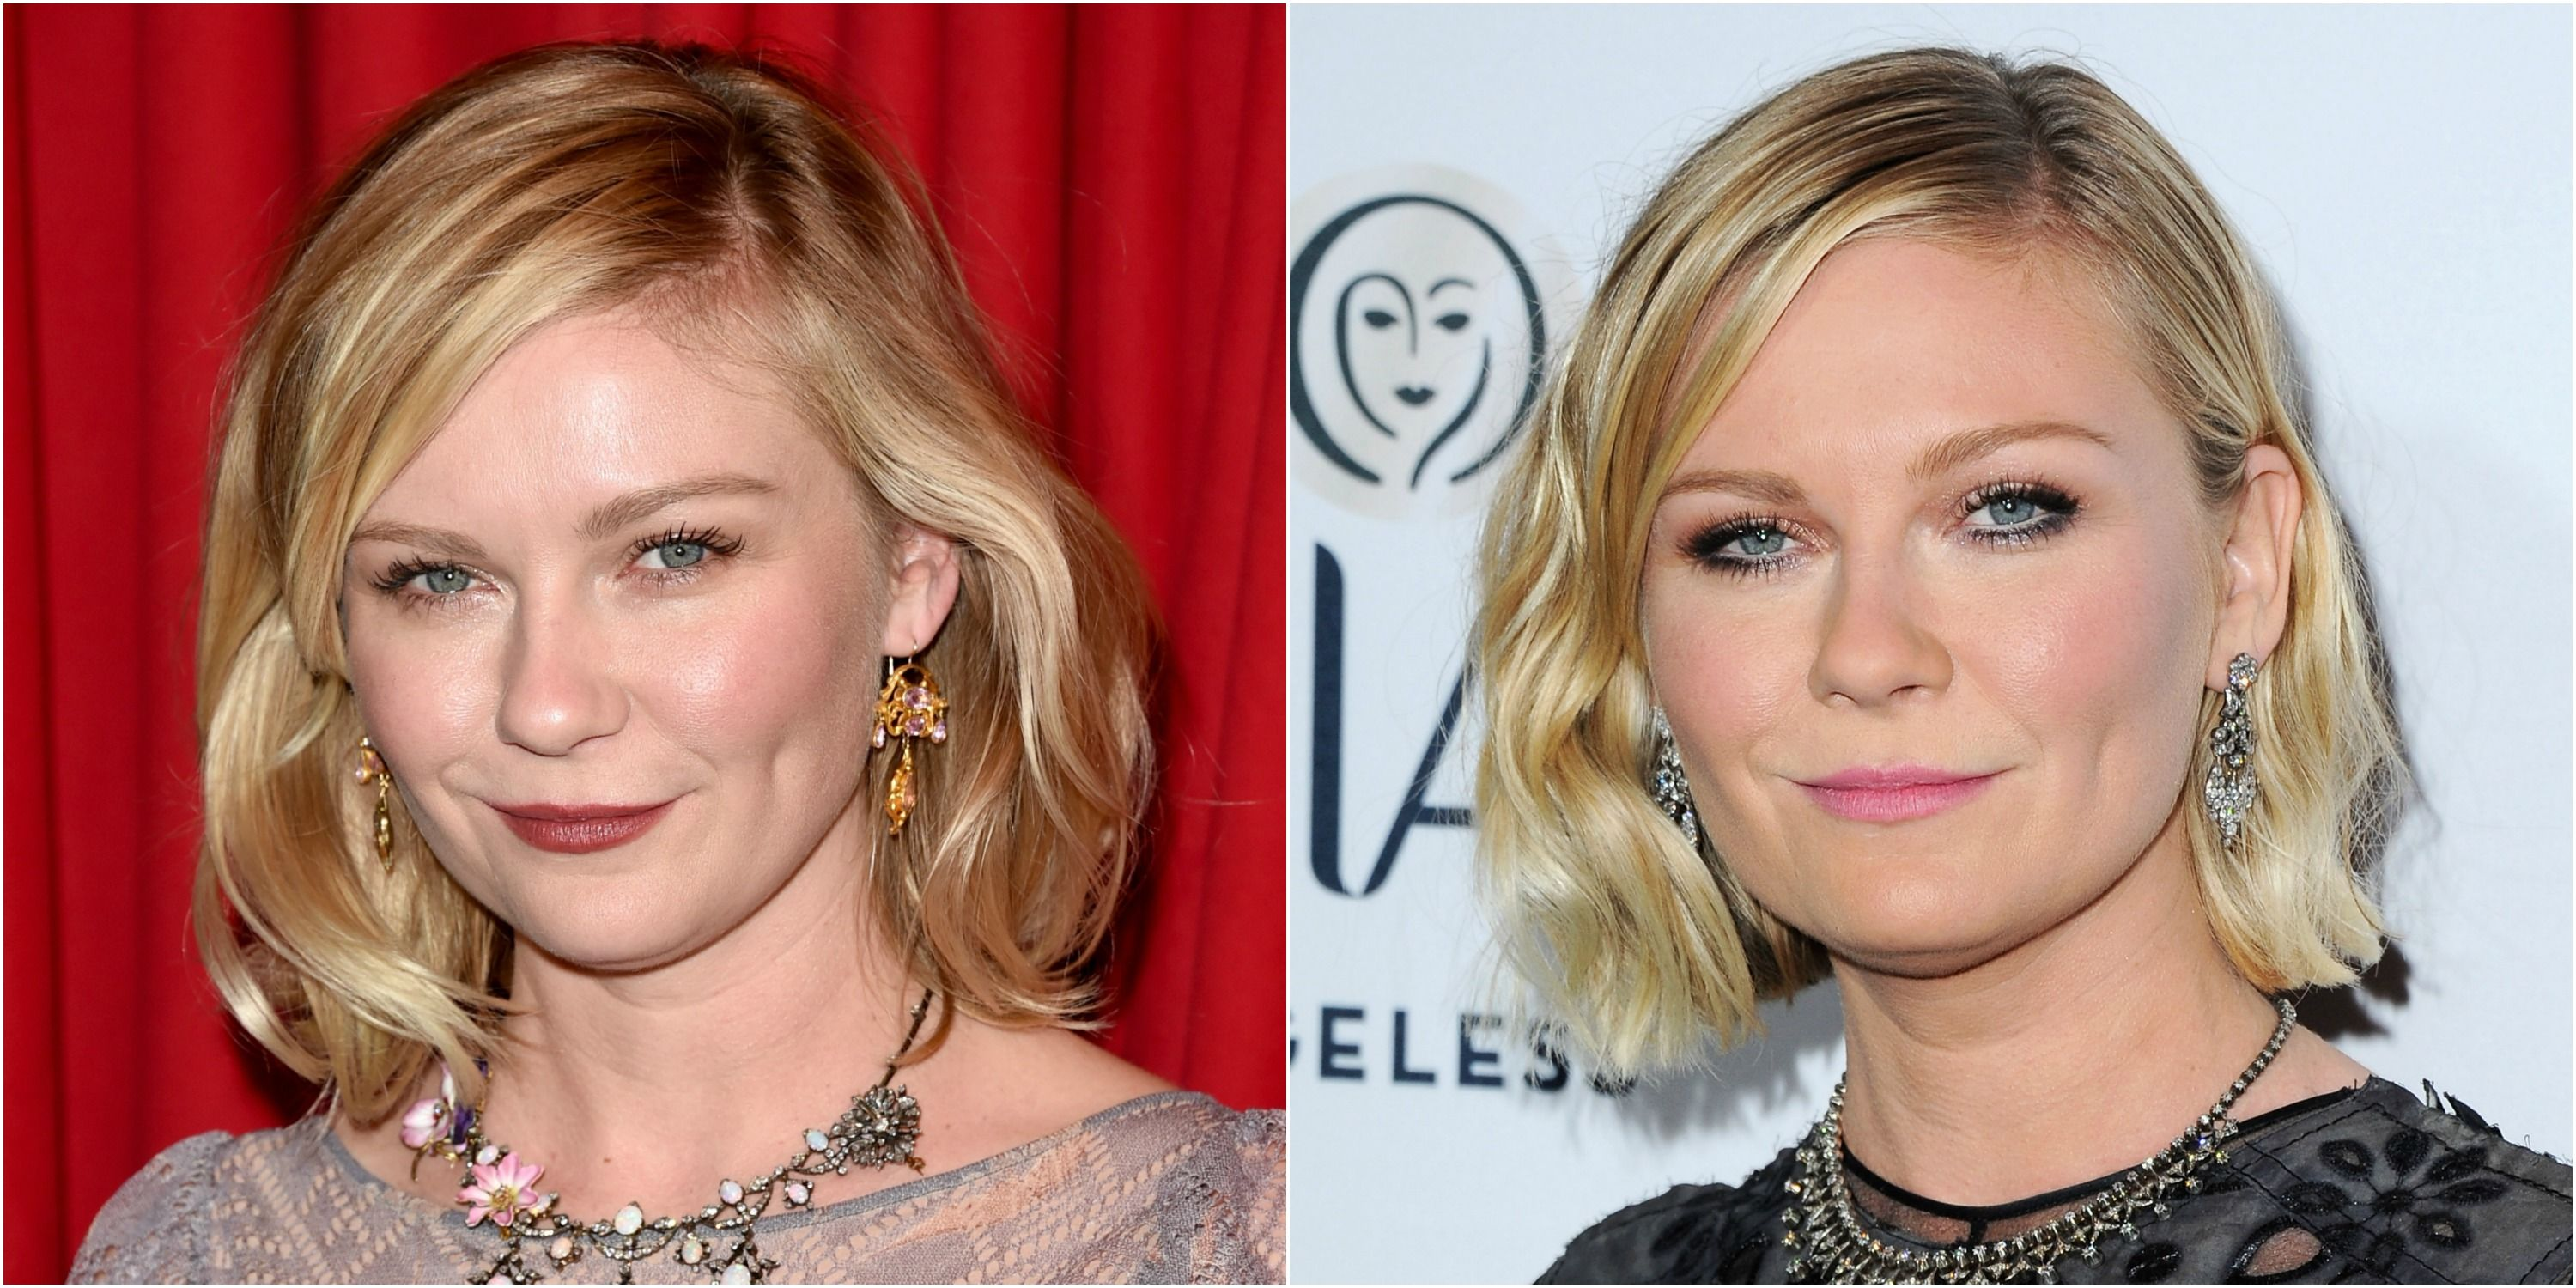 30 Best Celebrity Haircuts Celebrity Hair Makeovers & Hairstyle